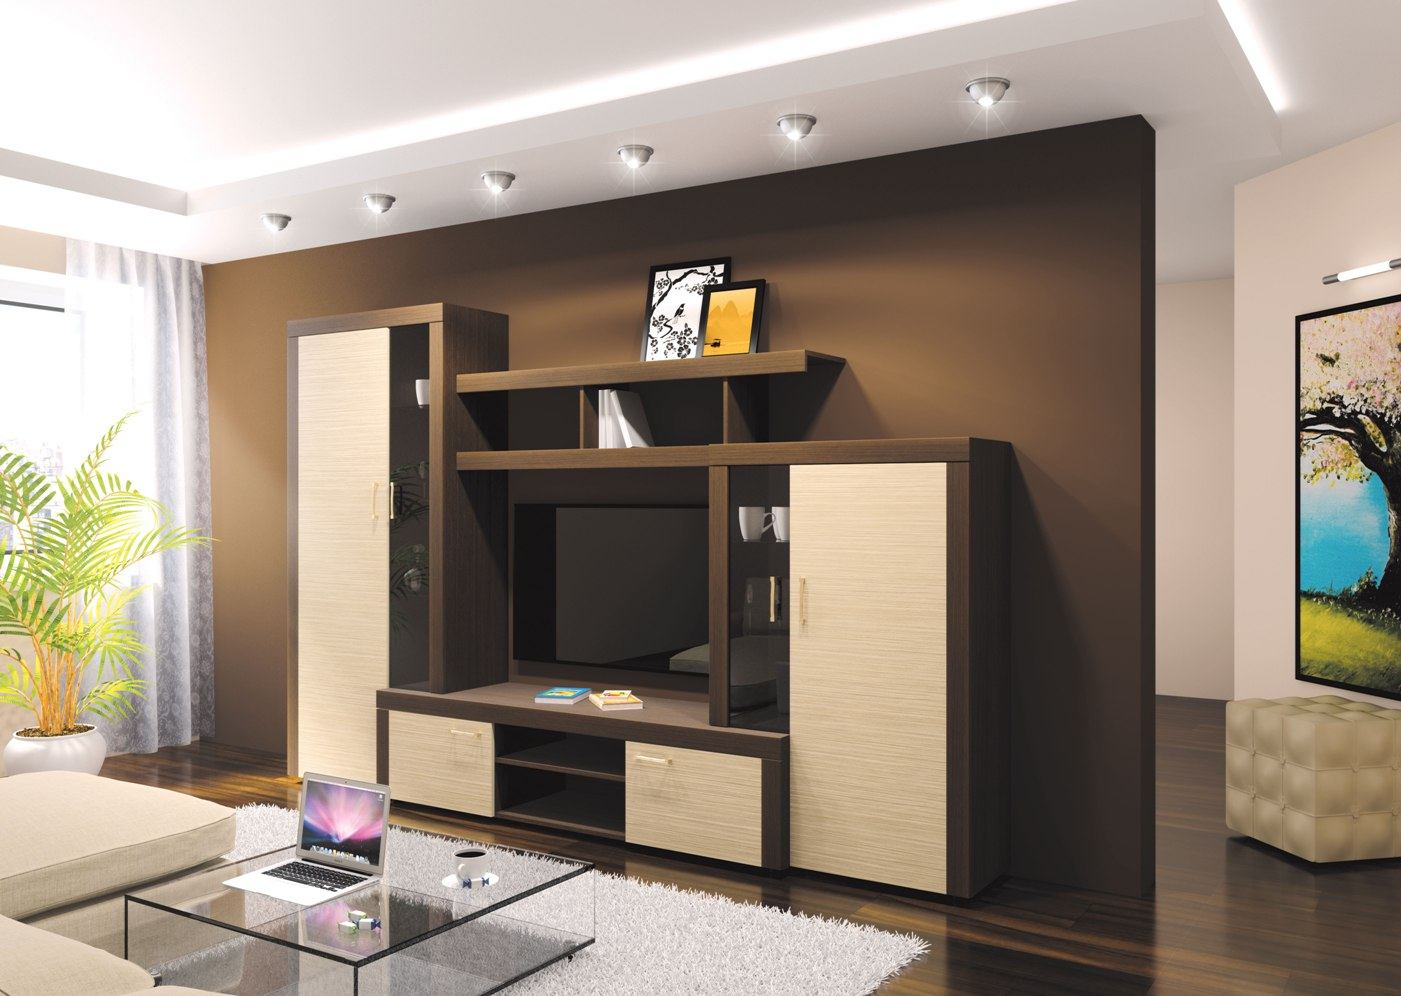 Living Room Cabinet Furniture to Add Practilcal Solutions to the Interior. Dark chocolate wall design